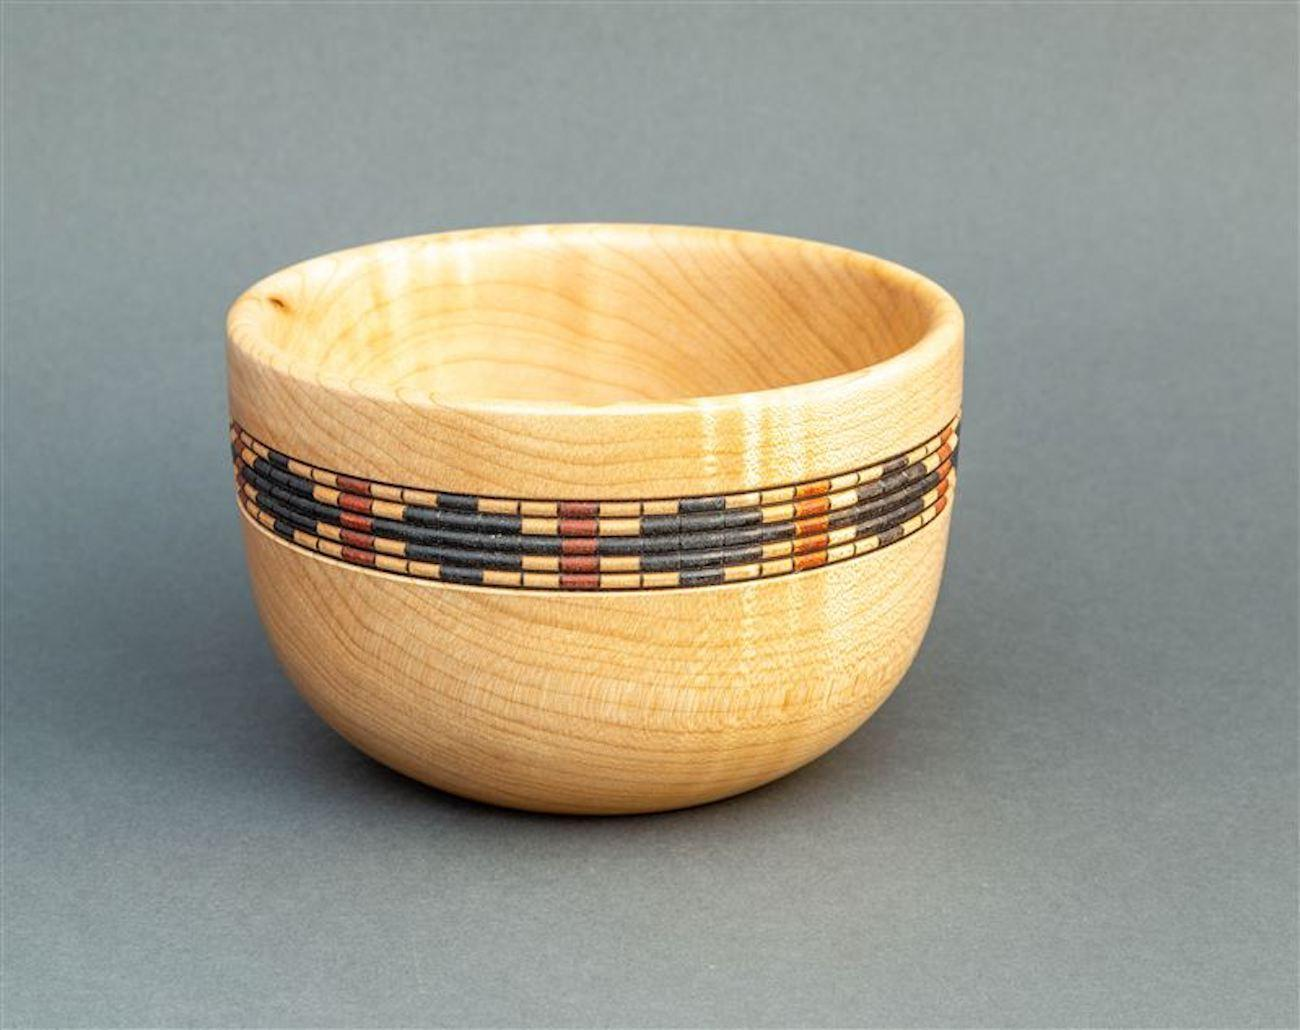 Six-inch maple bowl by Beverly Connelly / Beads were turned in the side, lines burned, and Indian ink was used to create the design. / Image courtesy of the Ohio Valley Woodturners Guild // Published: 4.18.19